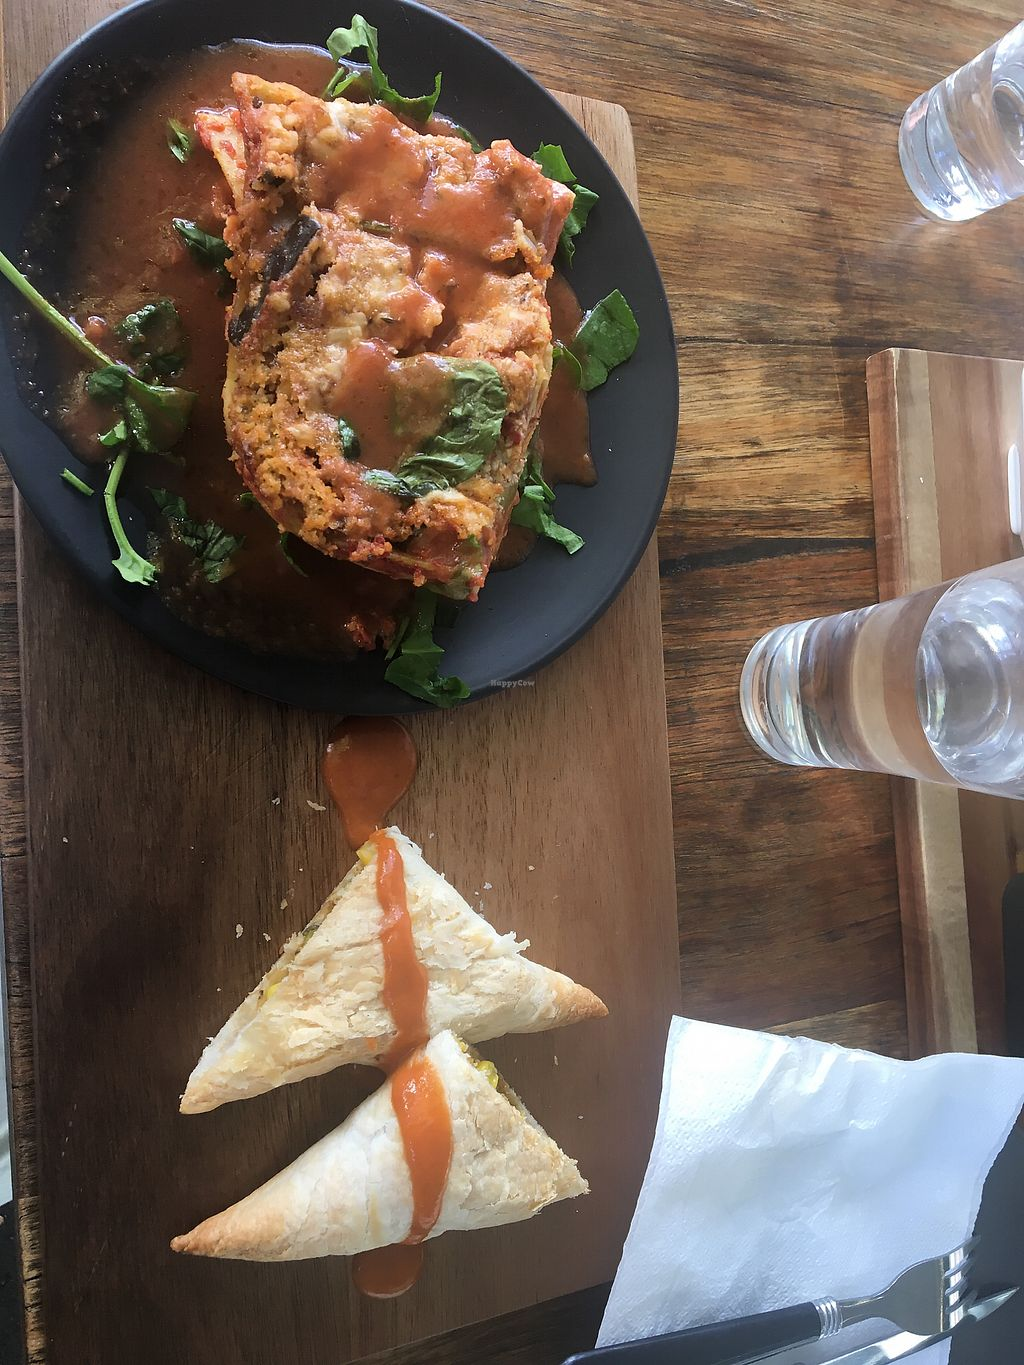 """Photo of Back2Nature Cafe  by <a href=""""/members/profile/EmmaZ"""">EmmaZ</a> <br/>Lasagne and veggie puffs  <br/> April 22, 2018  - <a href='/contact/abuse/image/115263/389233'>Report</a>"""